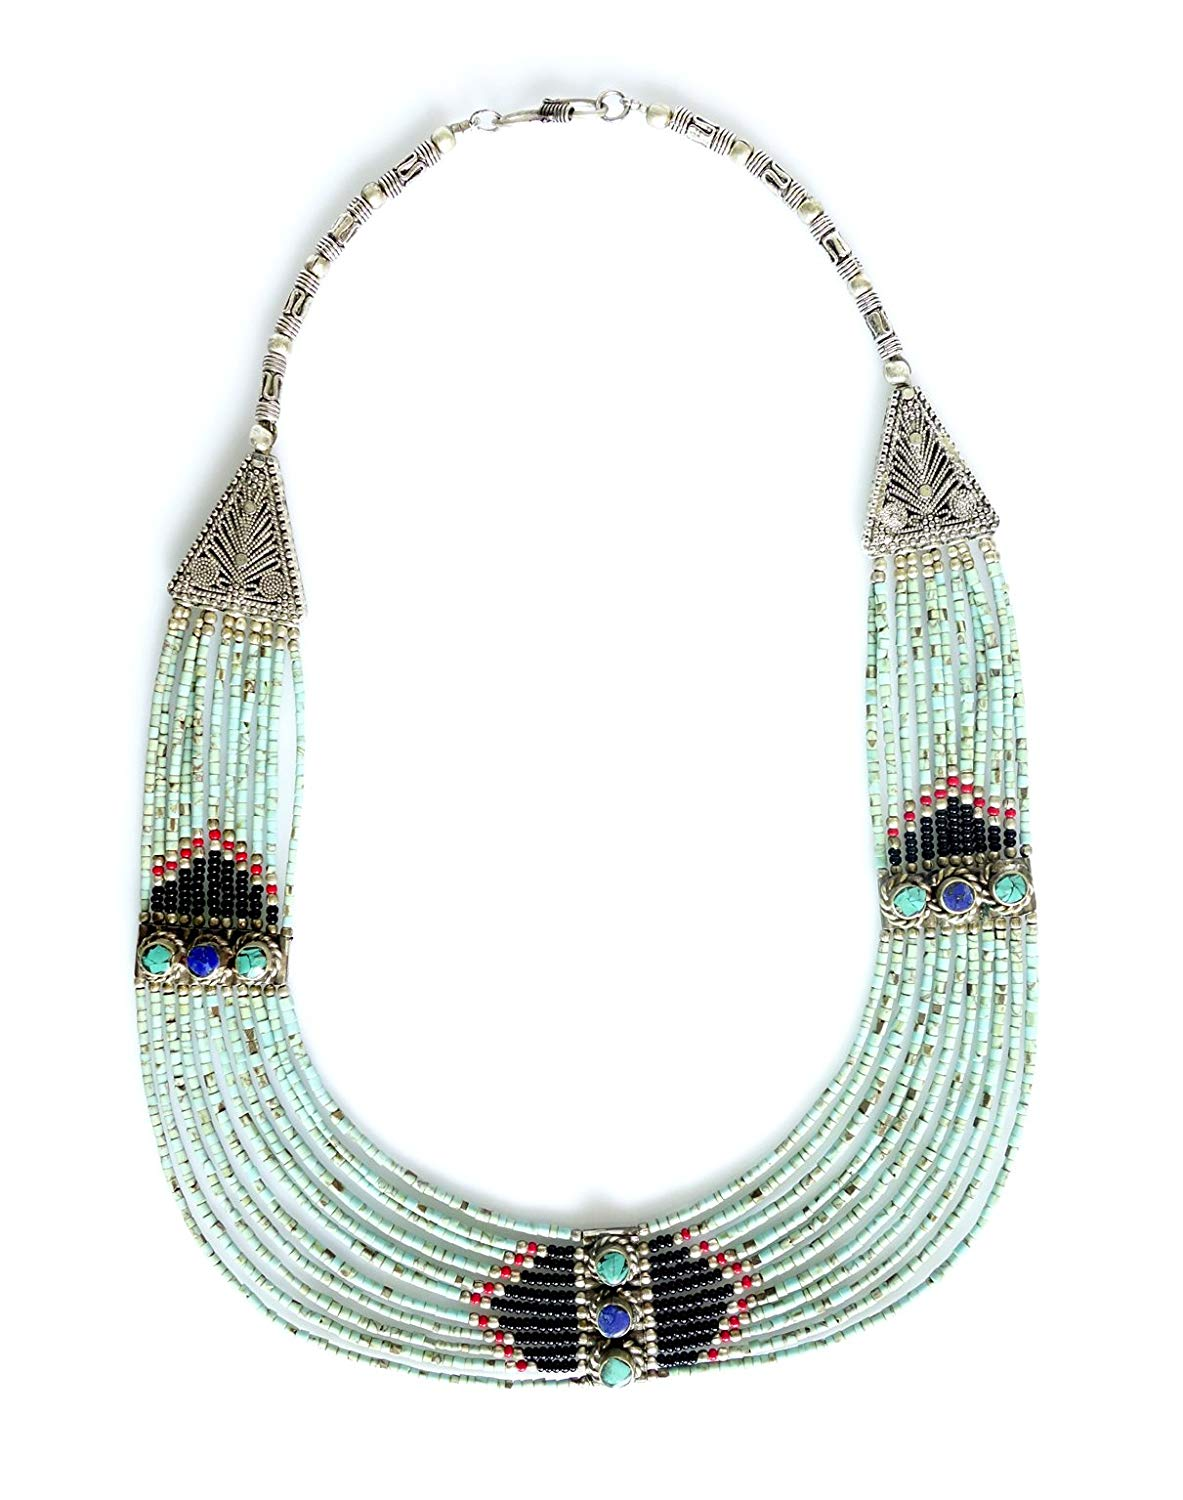 MULTI STRAND UNIQUE STATEMENT NECKLACE TURQUOISE GEMSTONE FINE FILIGREE COLLAR FASHION NECKLACE LIGHT WEIGHT ETHNIC TRIBAL GYPSY OXIDIZED SILVER HANDMADE JEWELRY FOR WOMEN AND YOUNG GIRLS